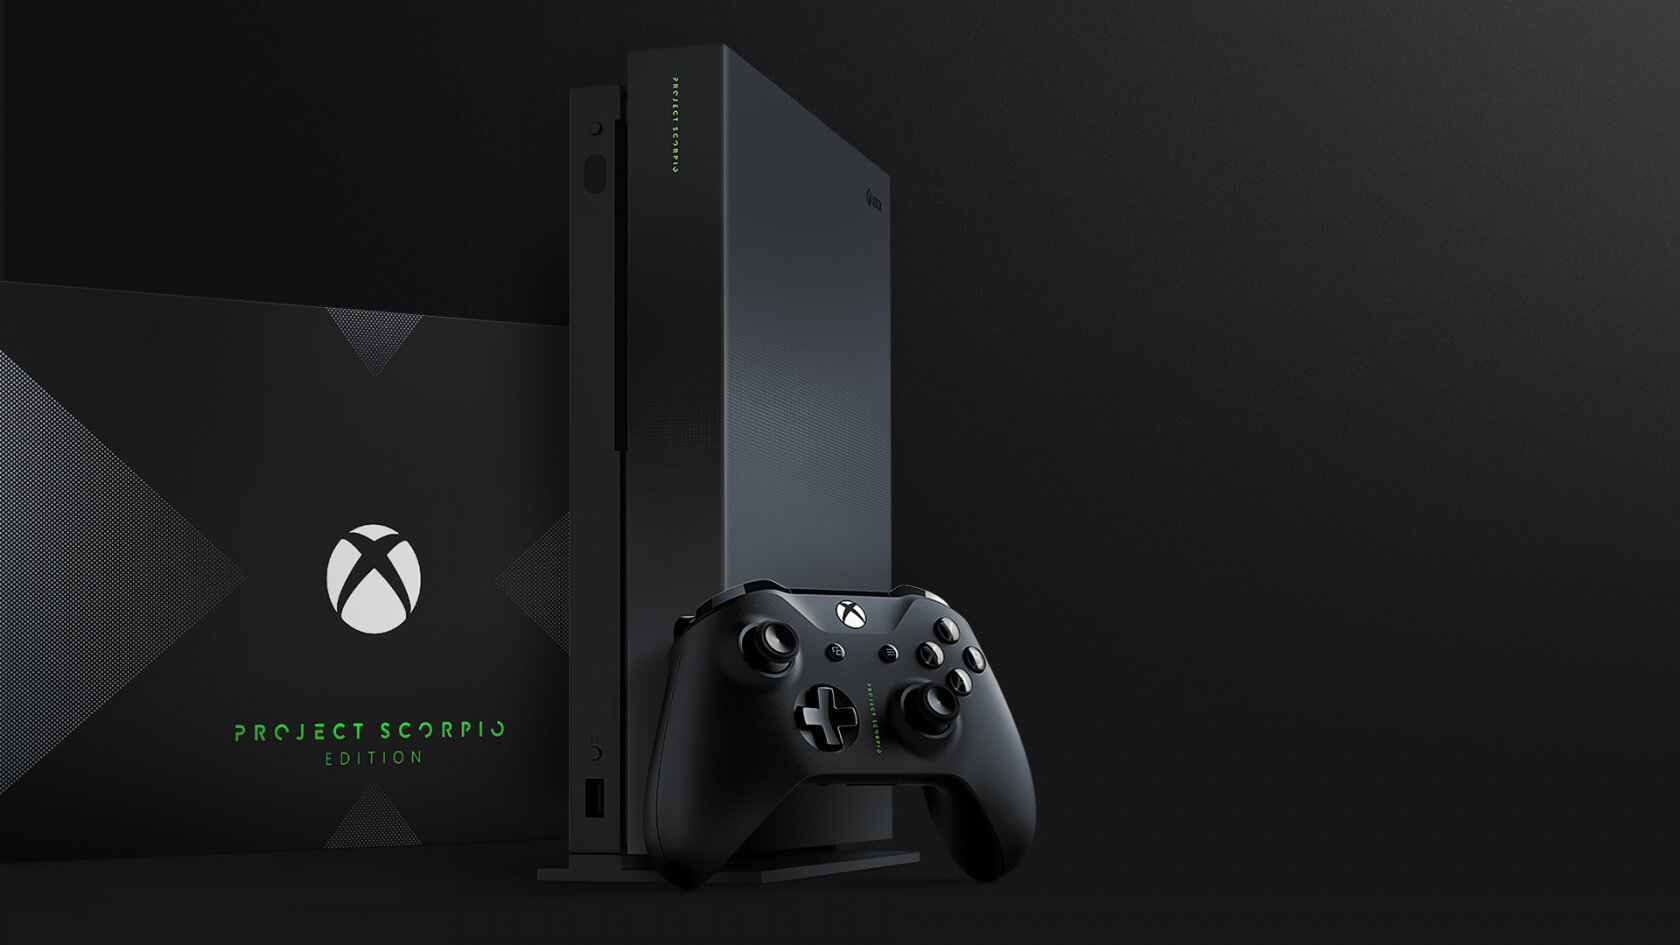 Xbox One X Scorpio Edition nearly sold out, over 100 games optimized for 4K